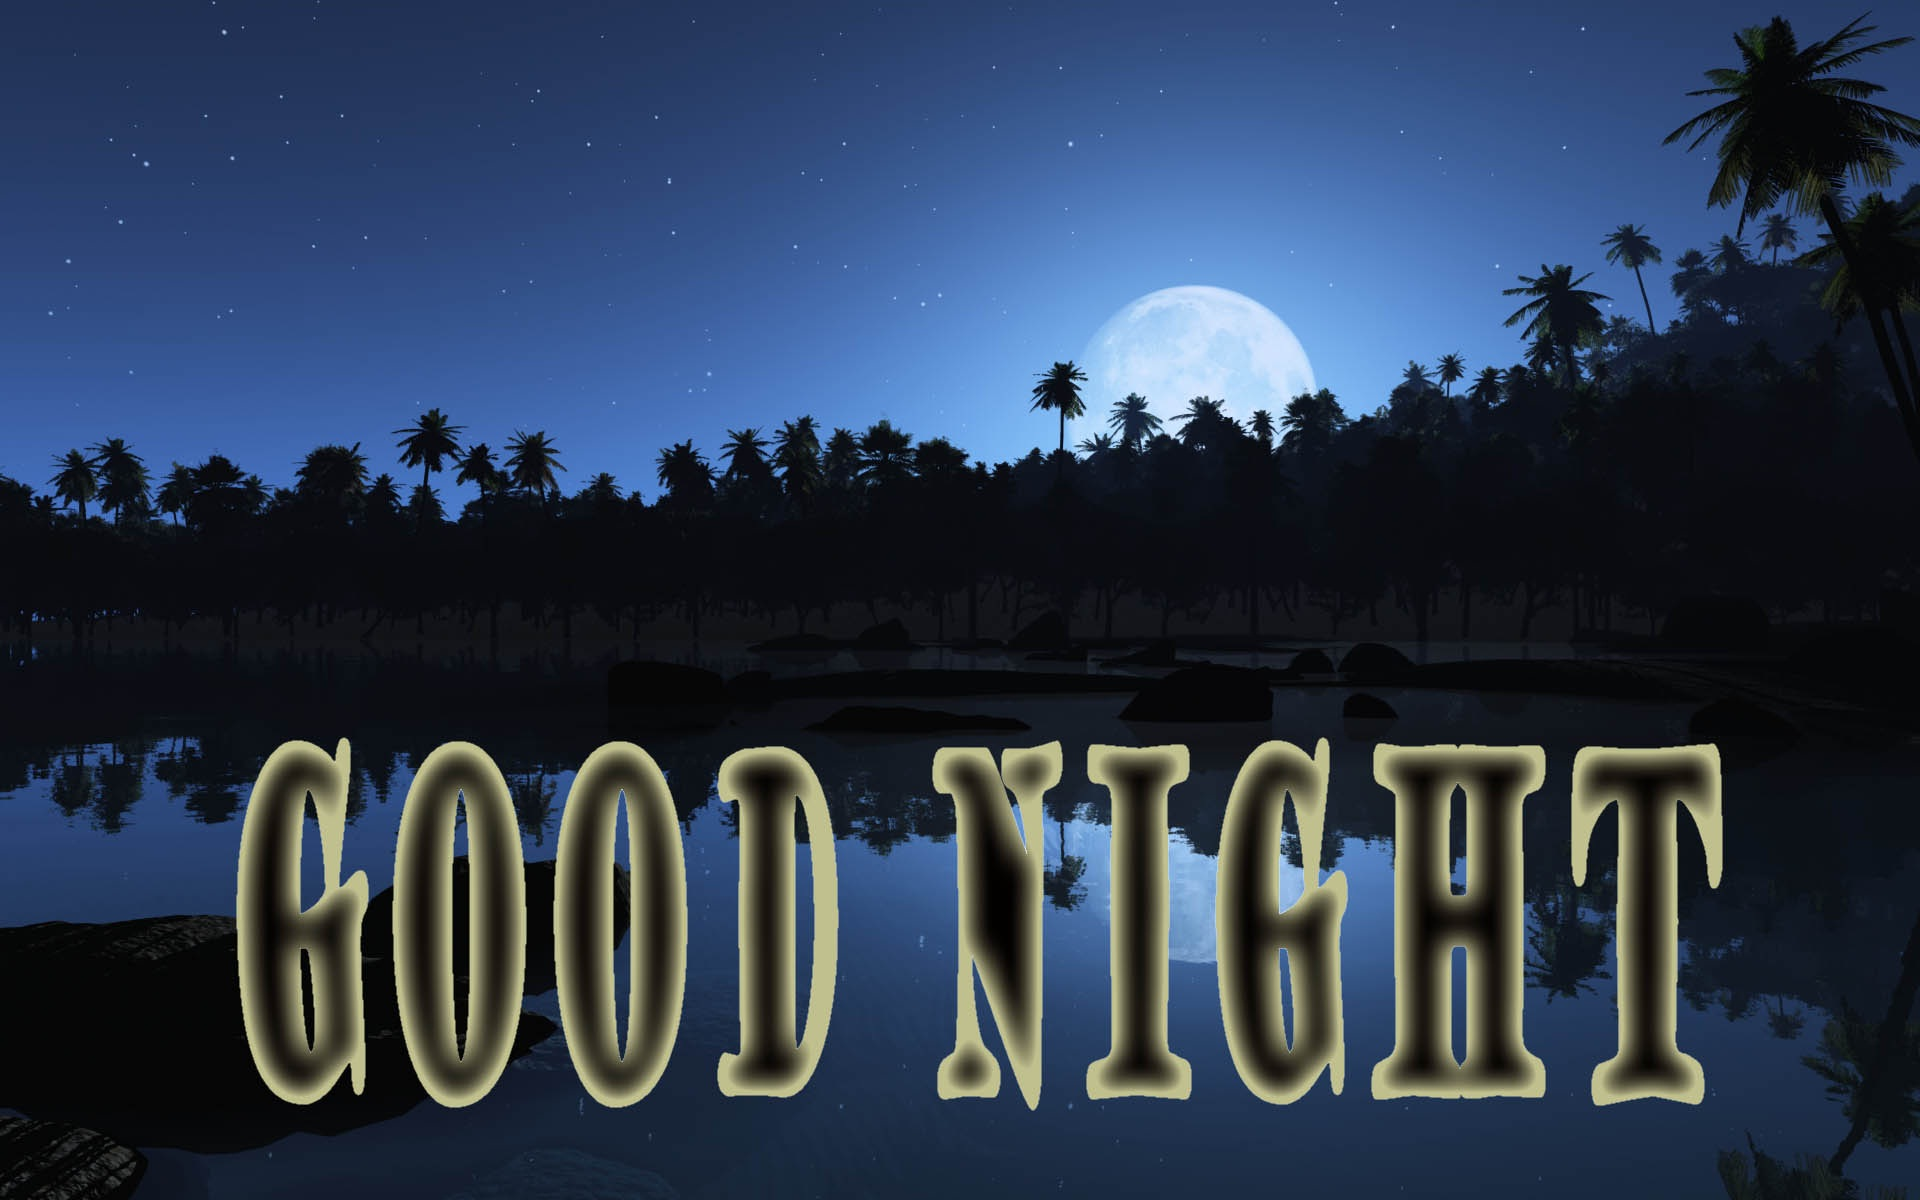 Good Night By Natures , HD Wallpaper & Backgrounds